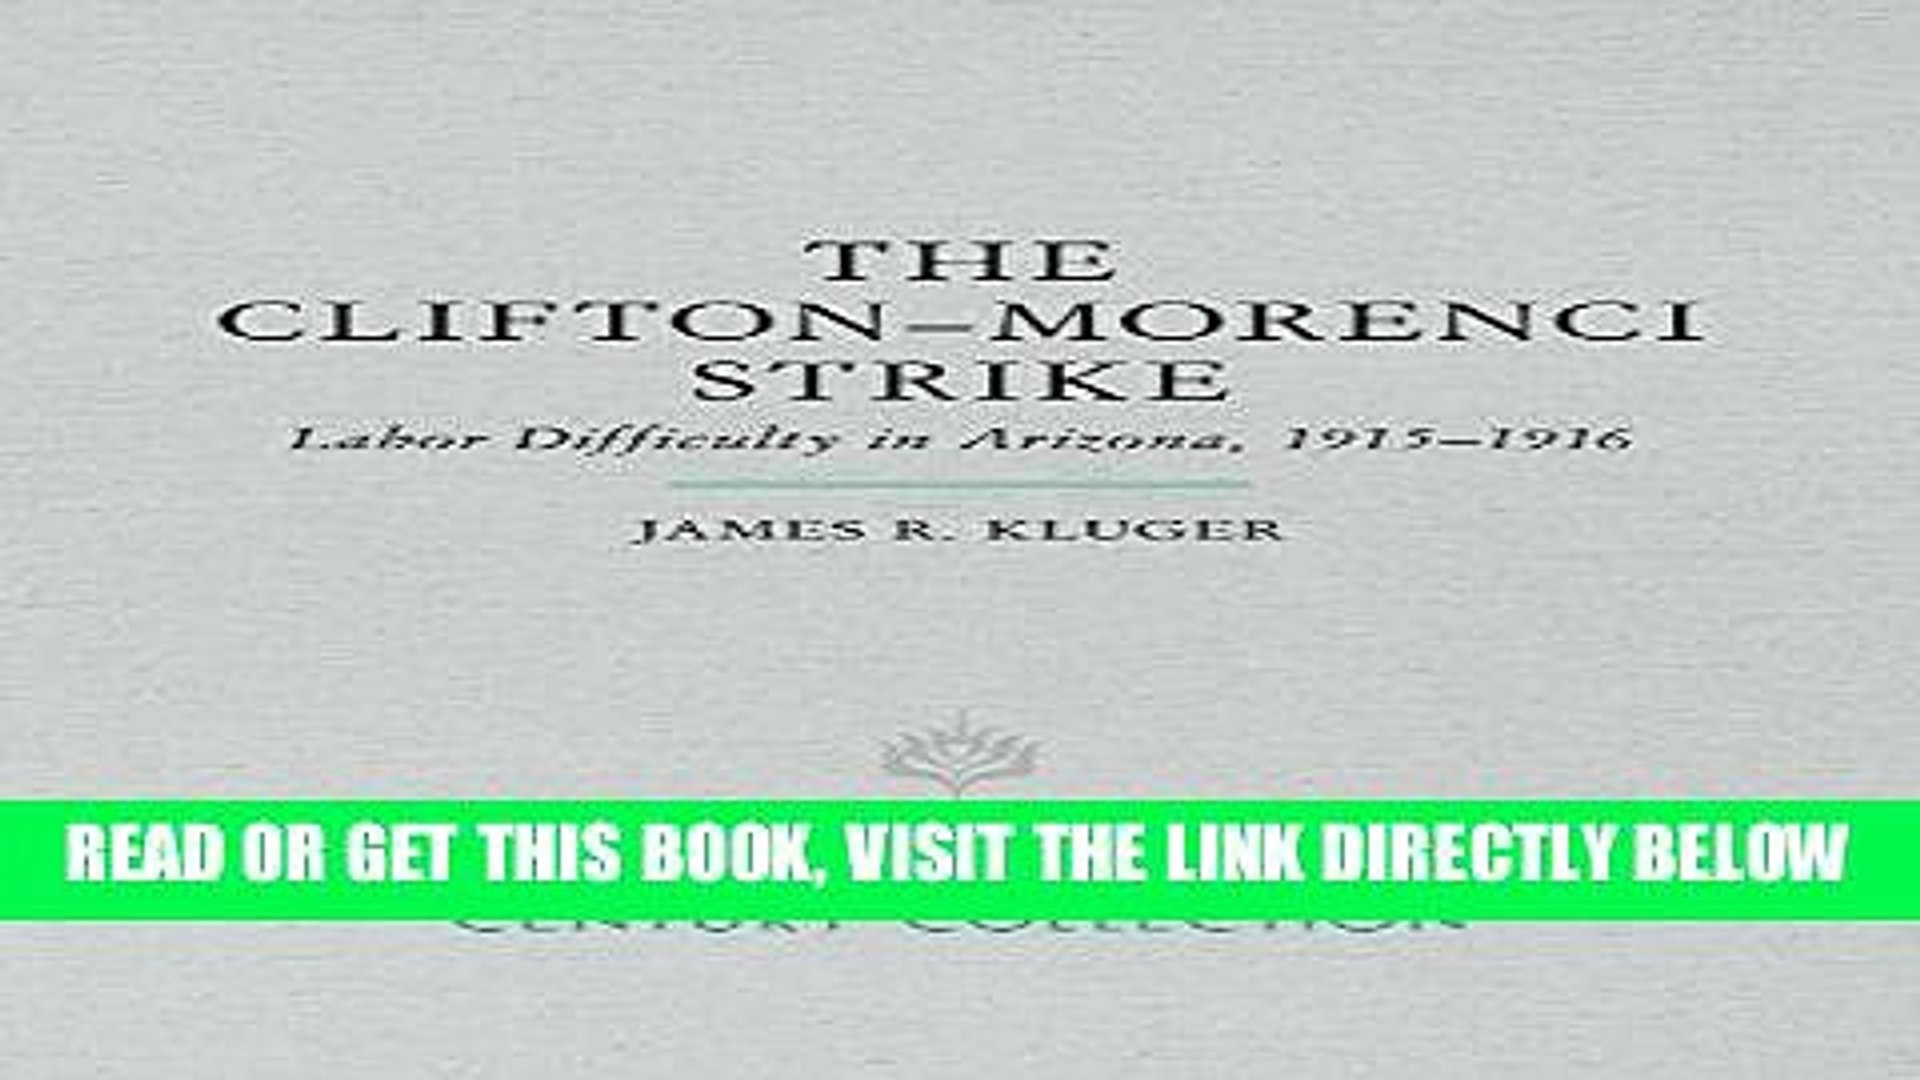 [Free Read] The Clifton-Morenci Strike: Labor Difficulty in Arizona, 1915–1916 (Century